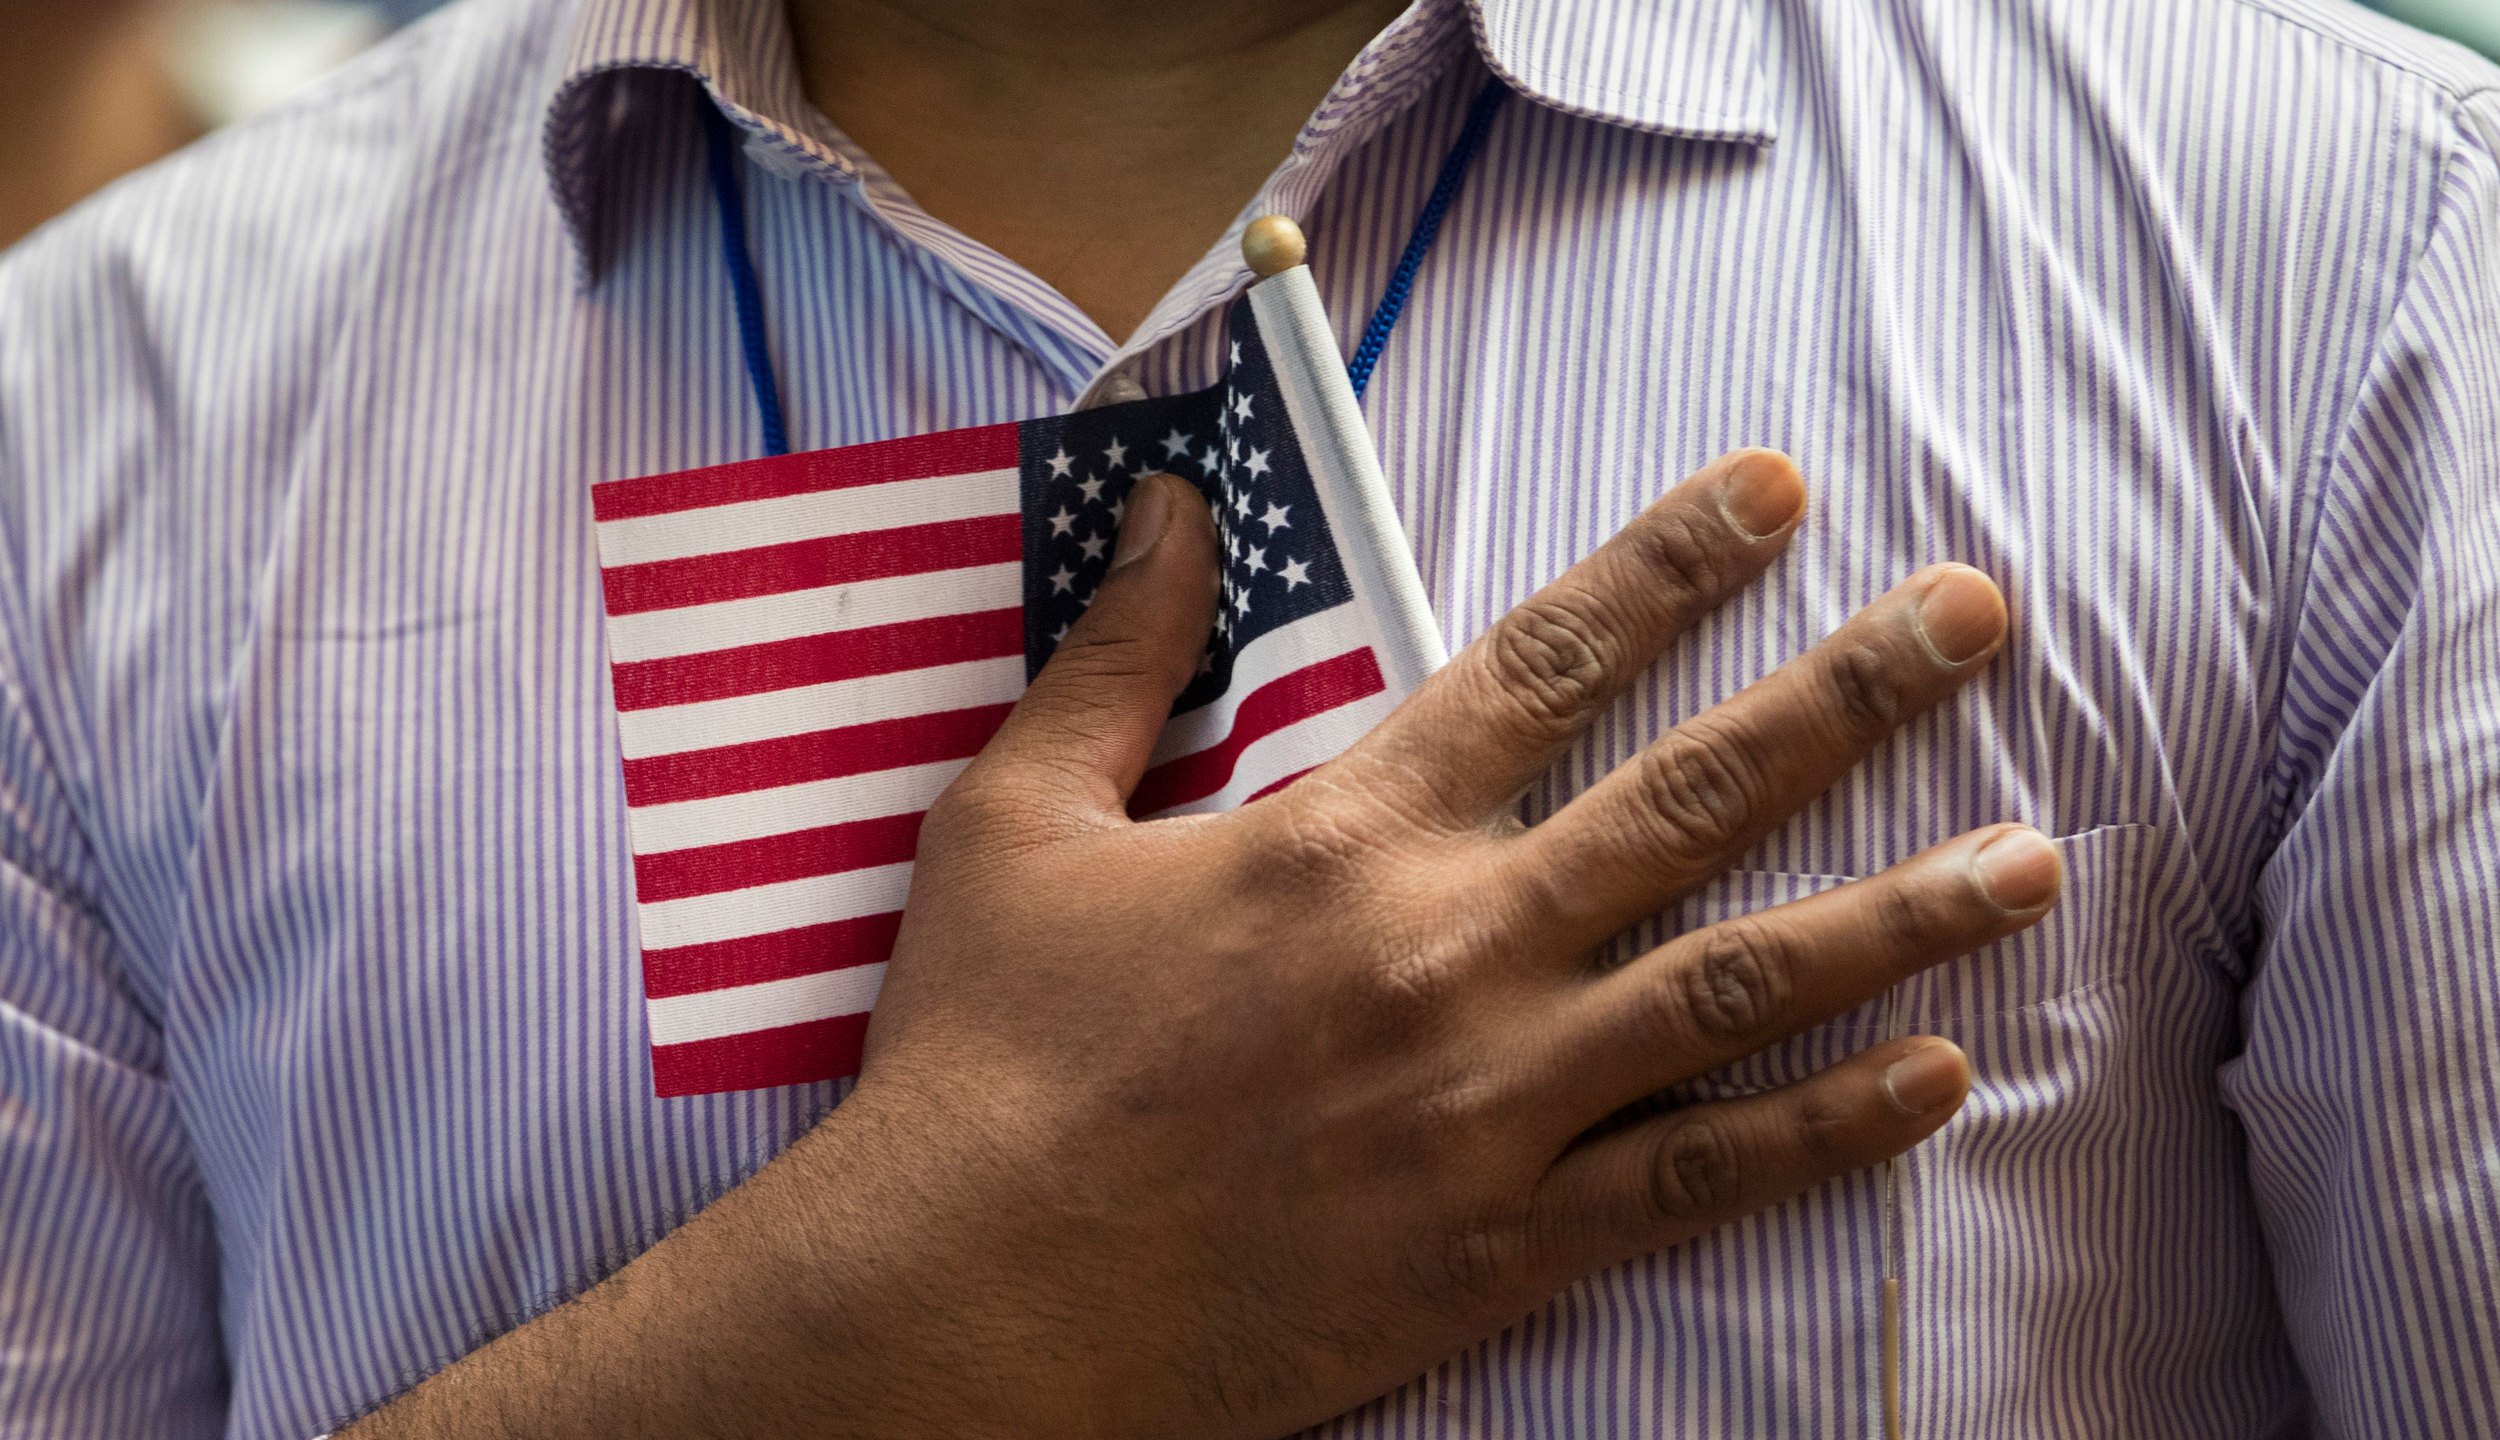 A new U.S. citizen holds a flag to his chest during the Pledge of Allegiance during a naturalization ceremony at the New York Public Library, July 3, 2018 in New York City. (Drew Angerer/Getty Images)